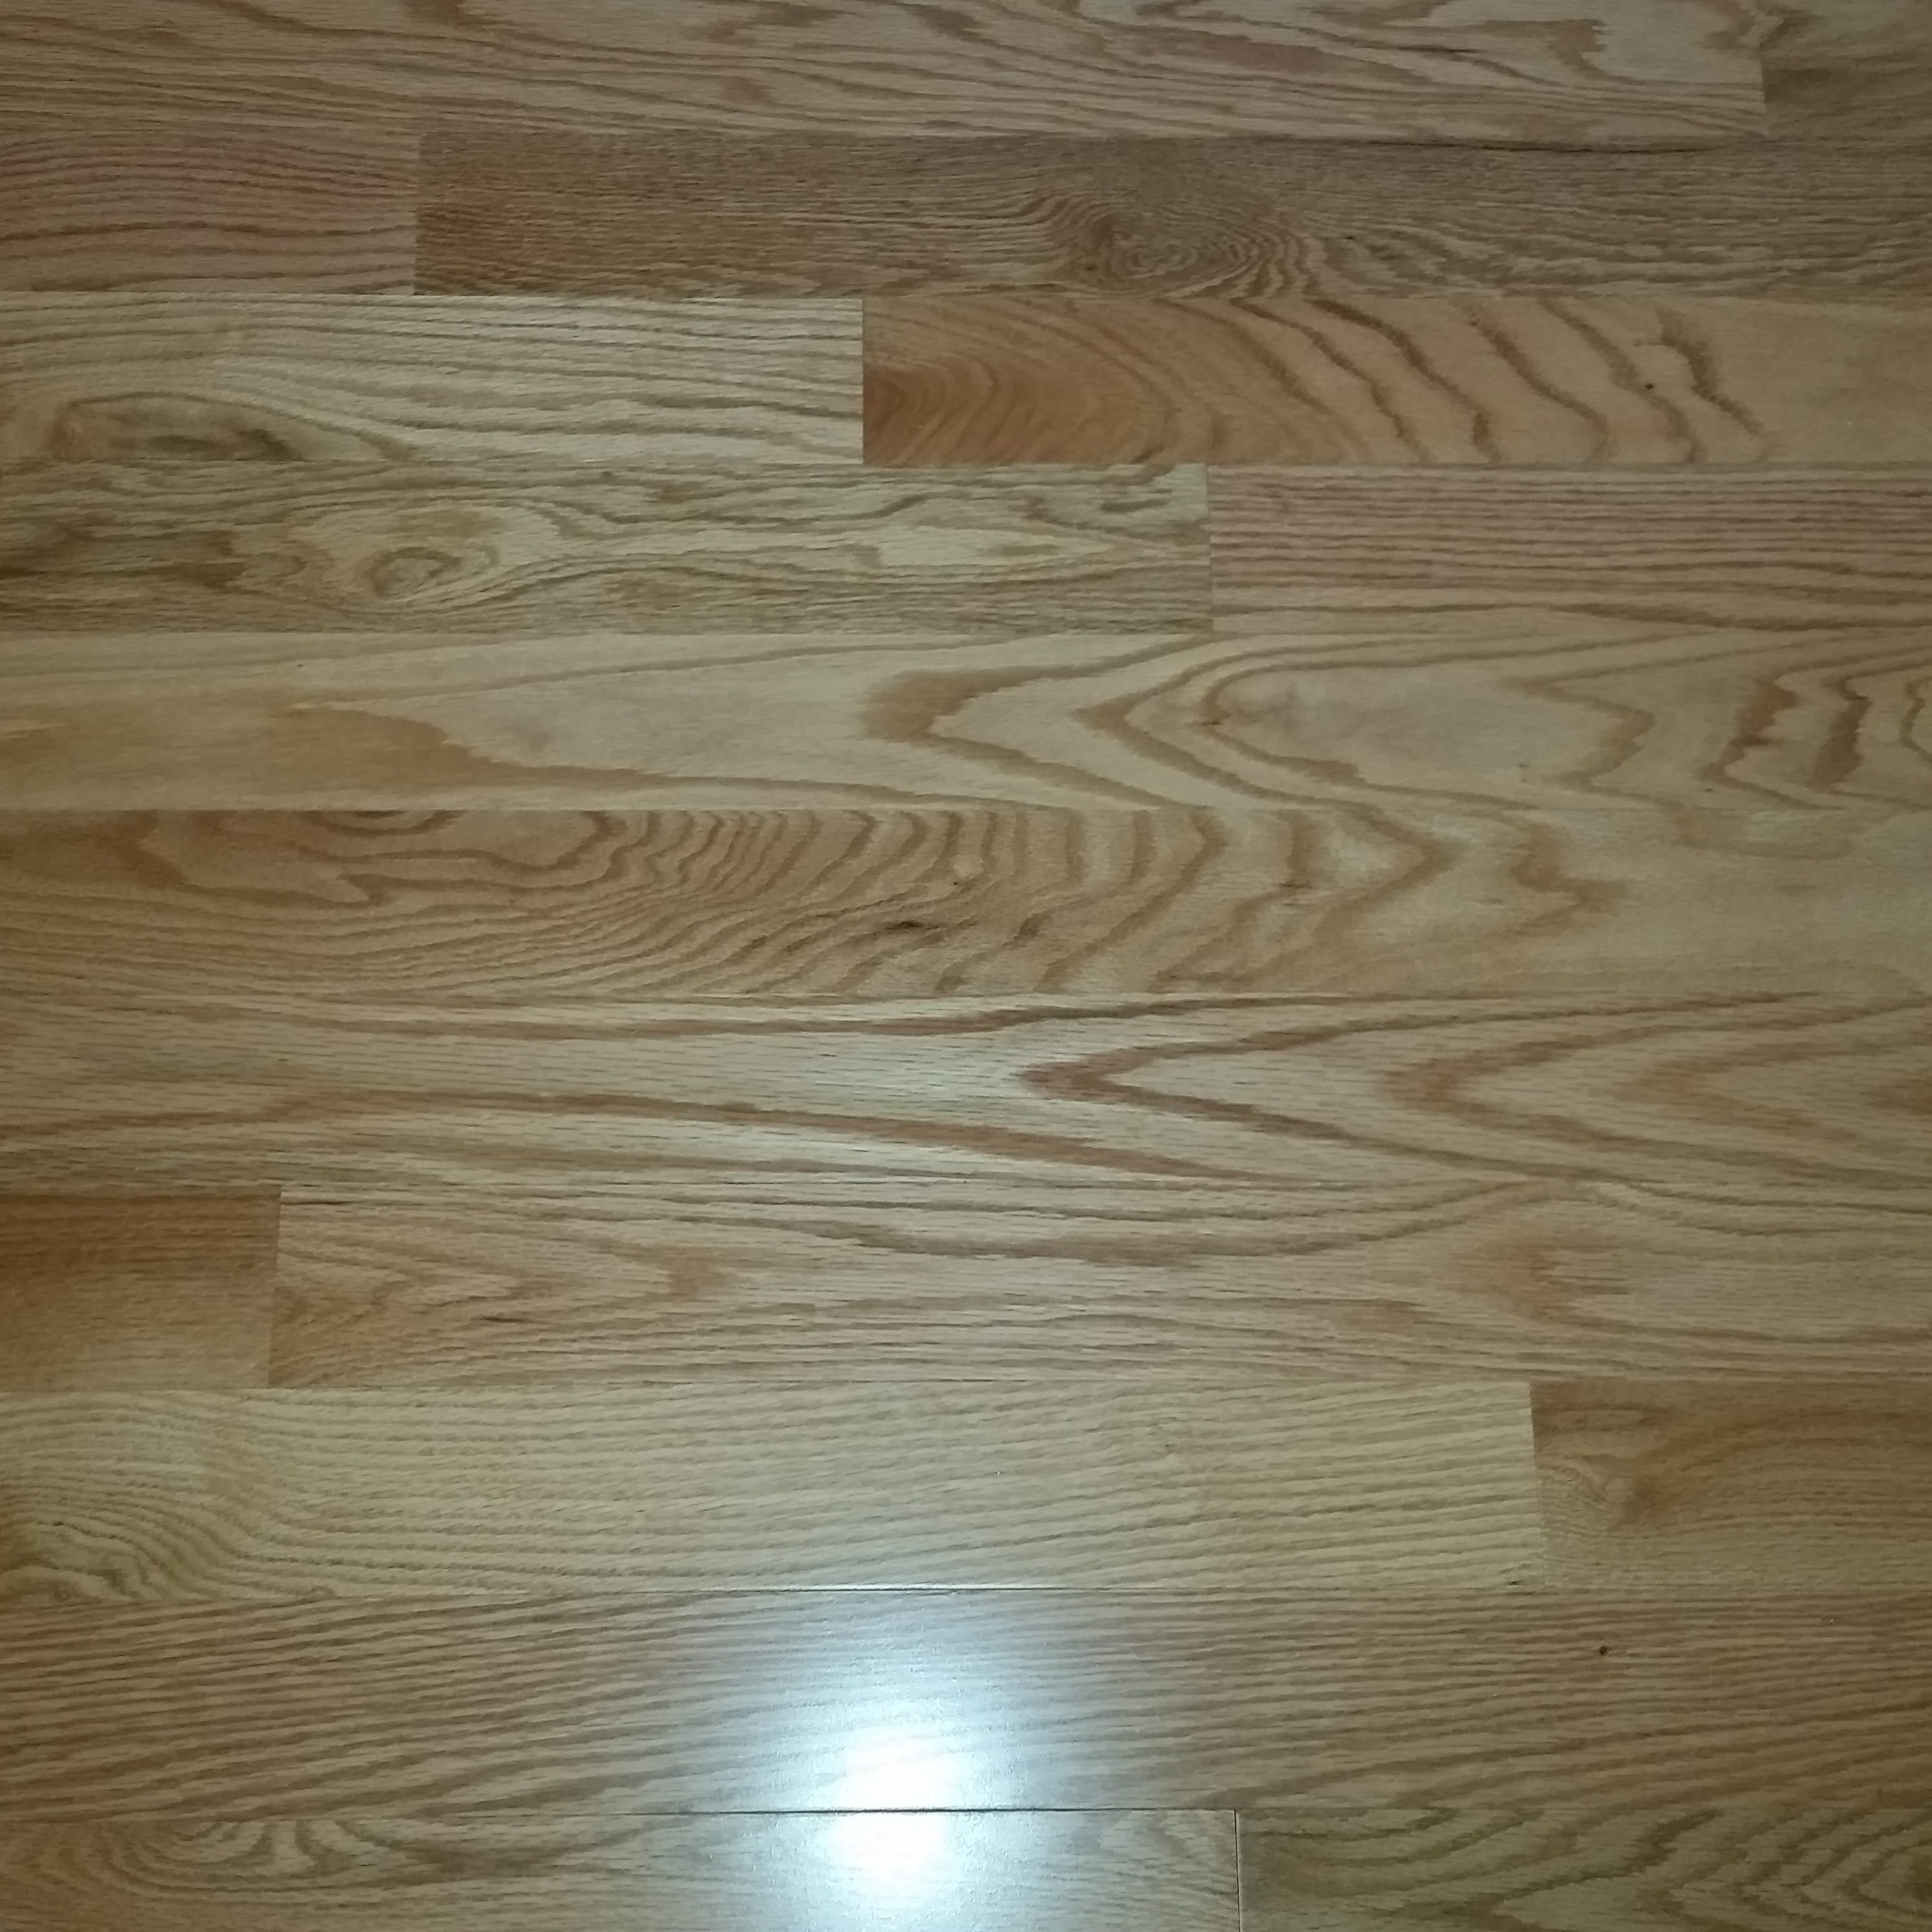 hardwood floor refinishing specialists of hardwood floor refinishing richmond va floor with hardwood floor refinishing richmond va can pets and hardwood floors coexist